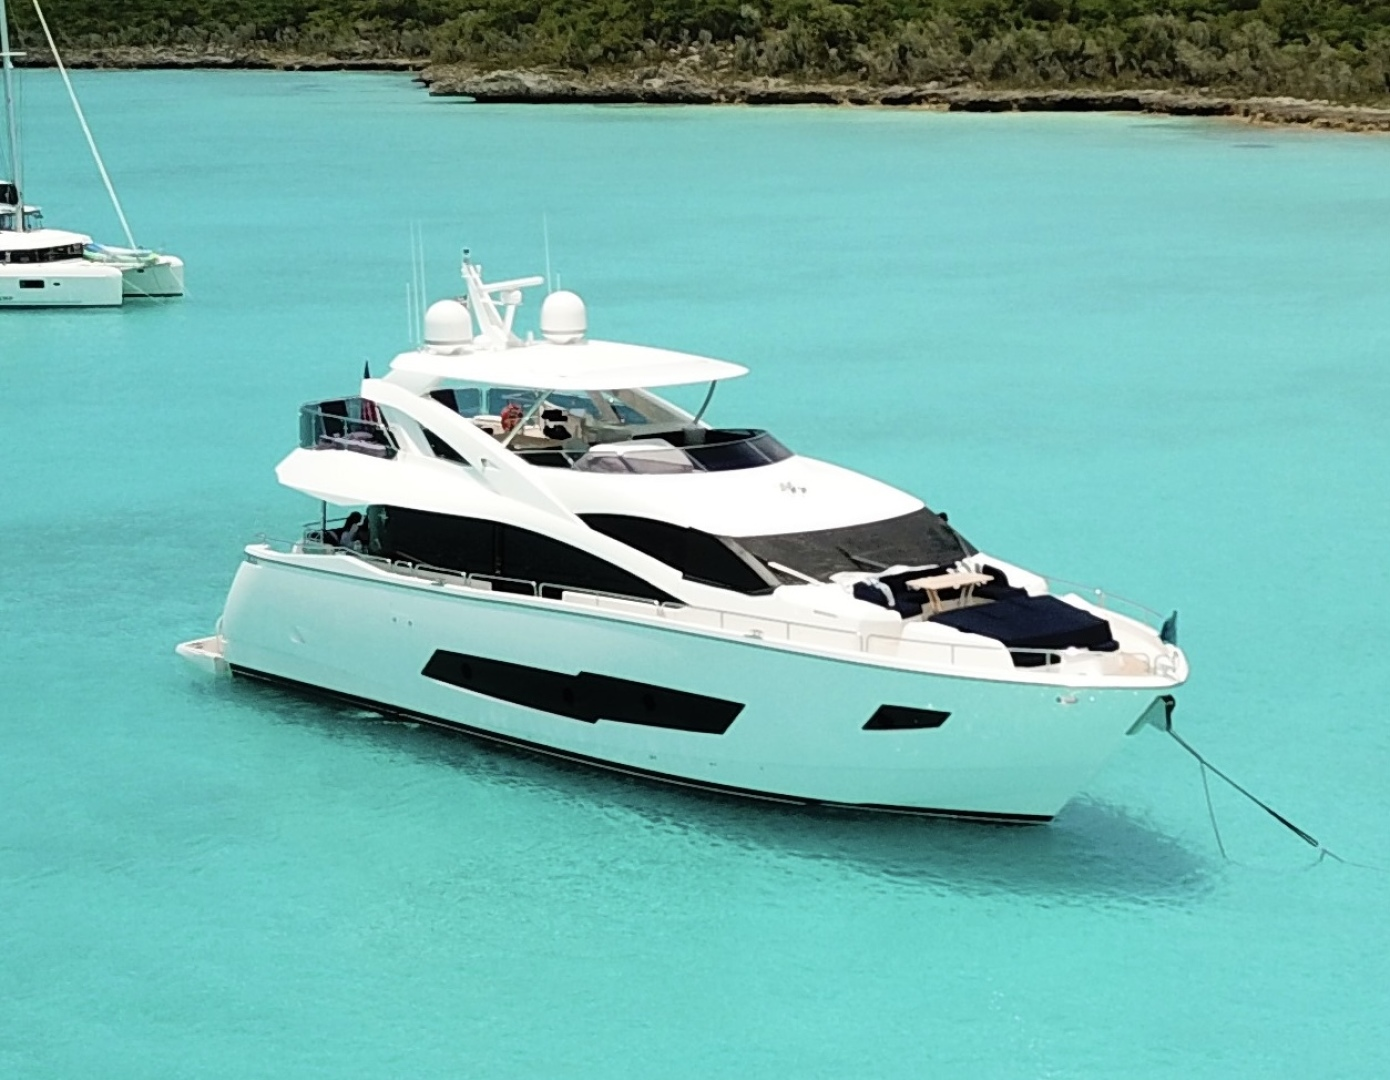 Sunseeker-86 Yacht 2019-Its Noon Somewhere Fort Lauderdale-Florida-United States-1556644 | Thumbnail